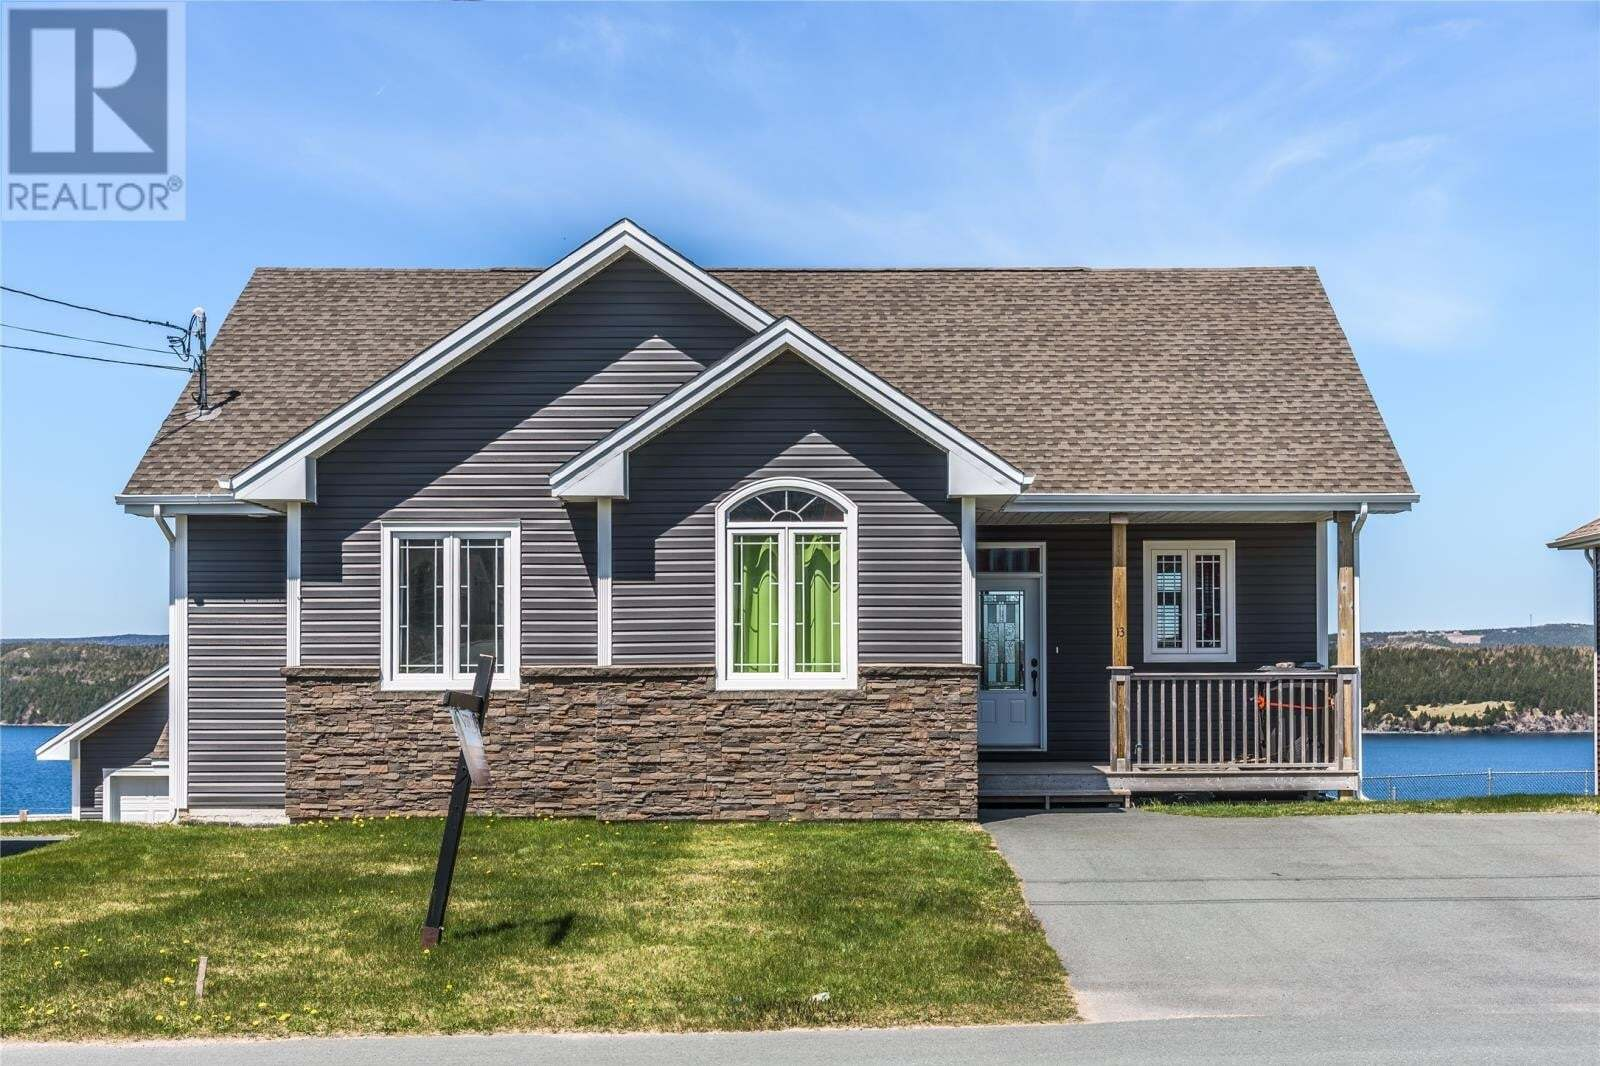 House for sale at 13 Harbourview Dr Holyrood Newfoundland - MLS: 1212312